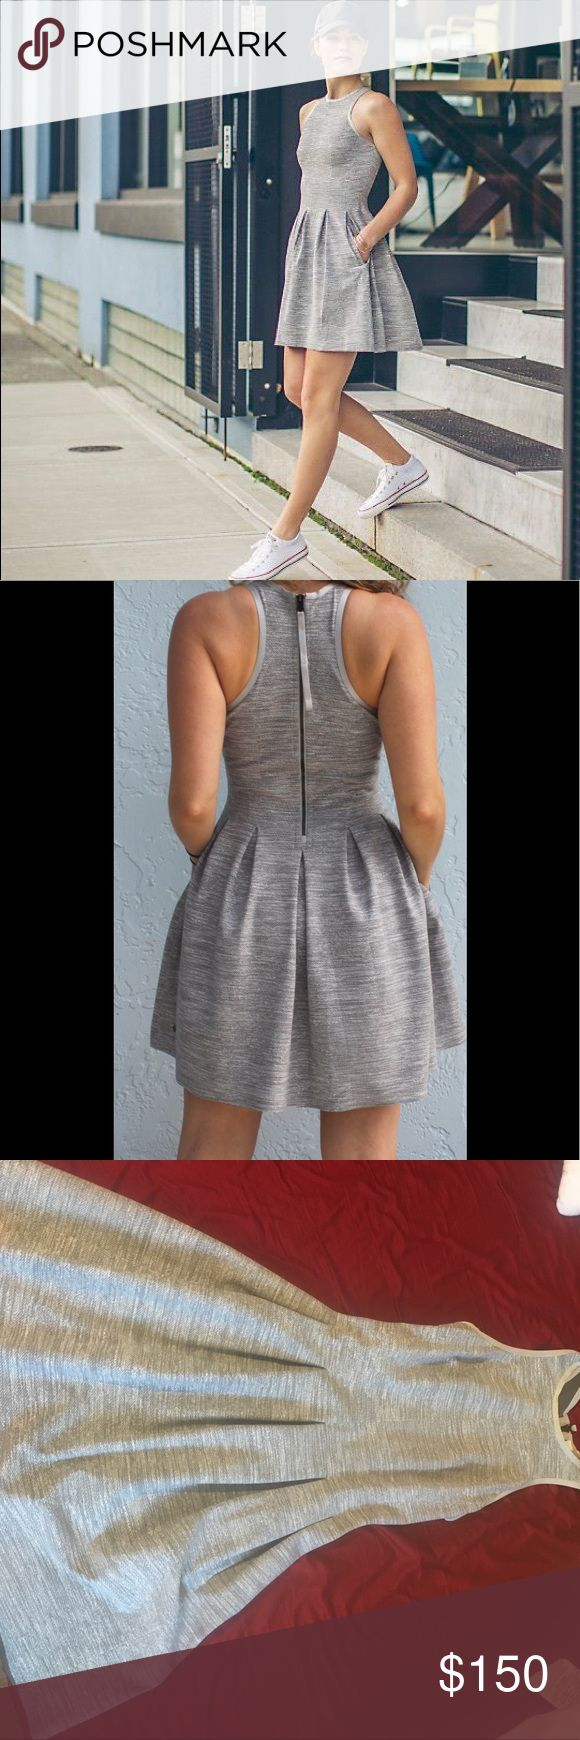 Brand new here to there gray lululemon dress sz 6 Brand new. Never worn. Flawless. Flattering. Sz 6. Gray with zip back and pockets 🖤🖤🖤 lululemon athletica Dresses